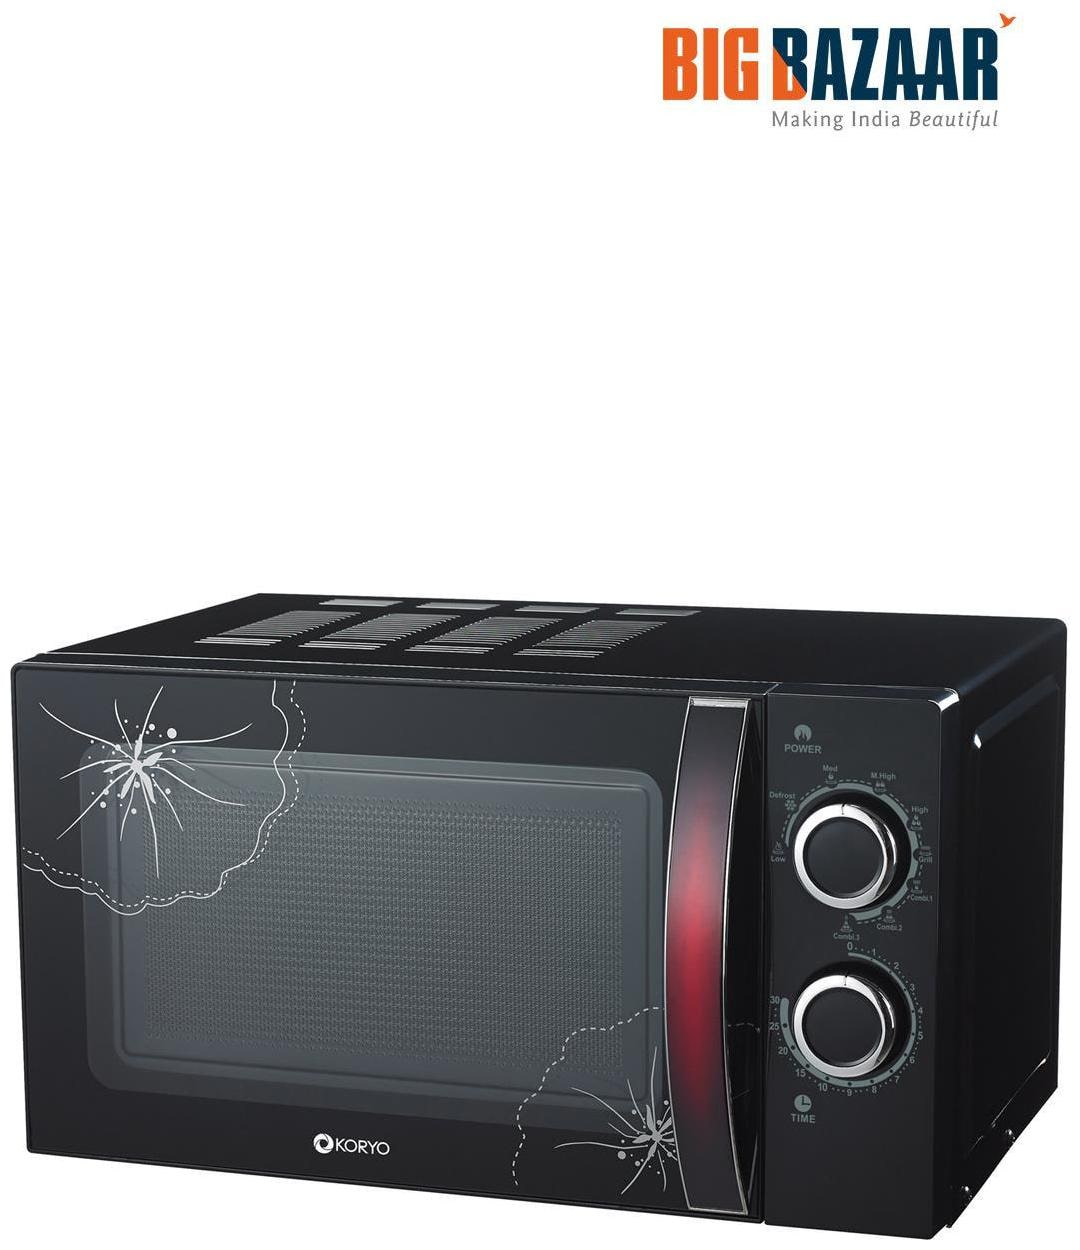 Koryo 20 Ltr Grill Microwave Oven Kmg21bf11 Online At 21